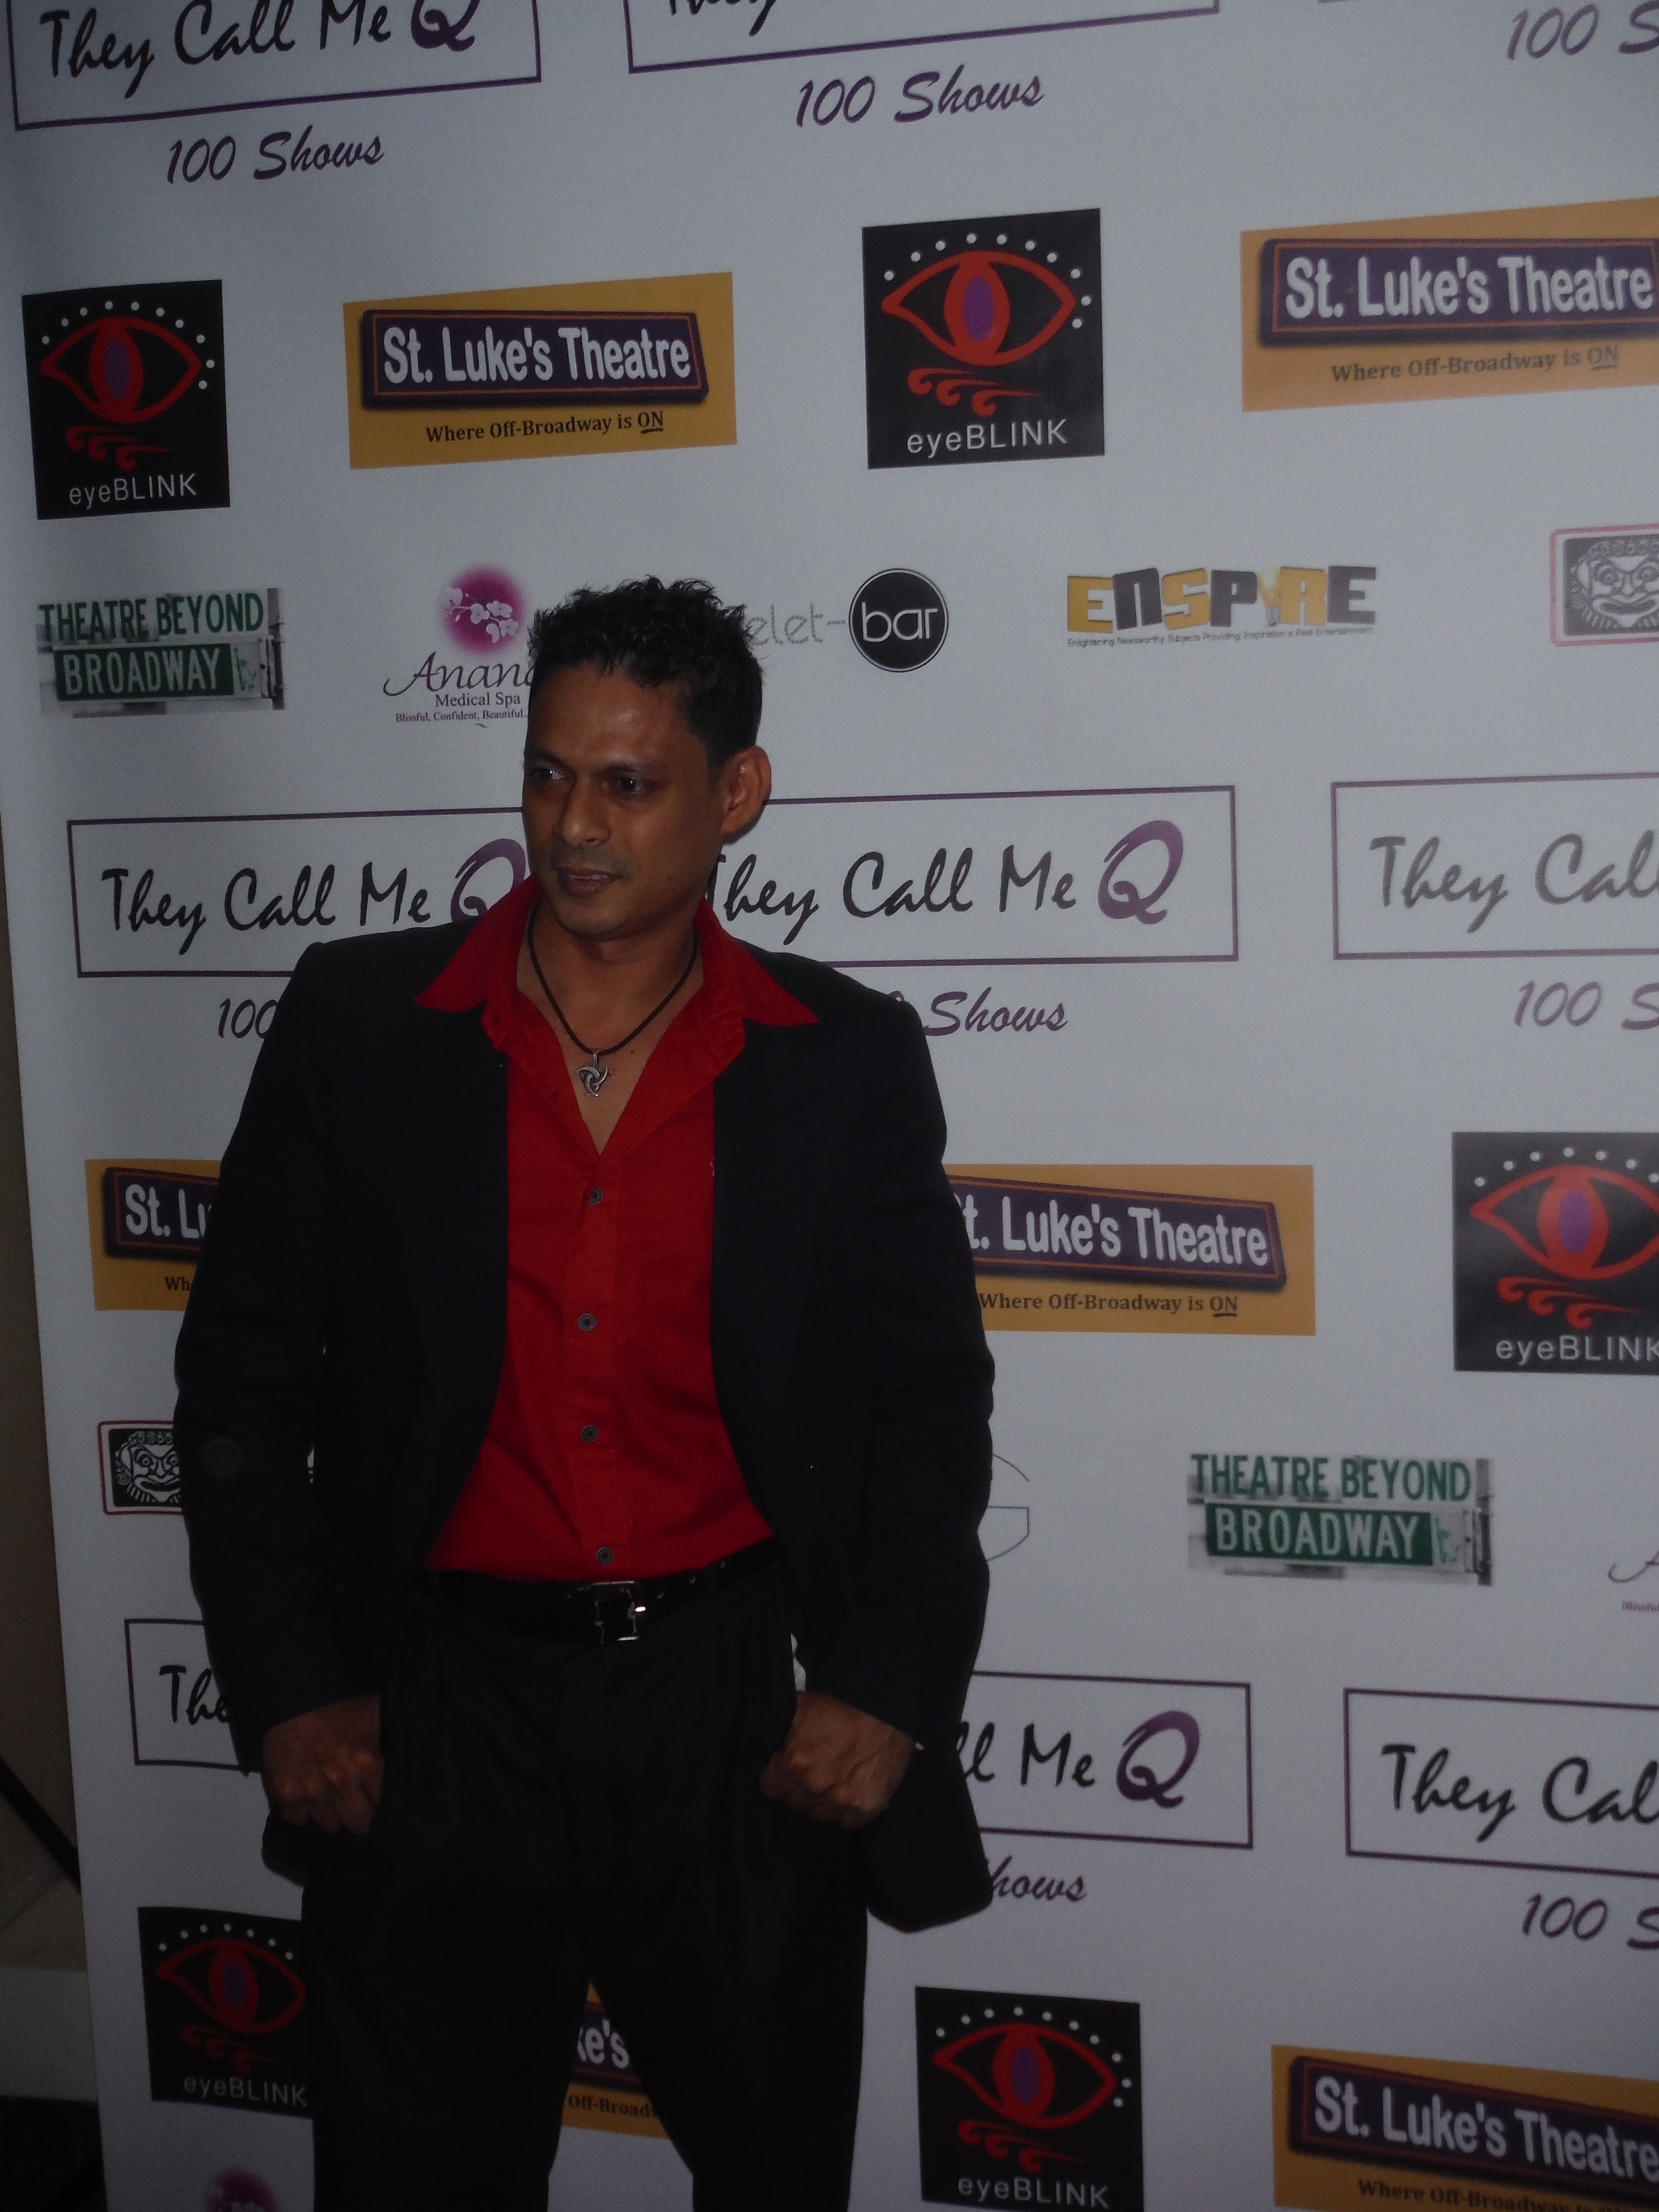 They Call Me Q 100th Show Party 039.JPG